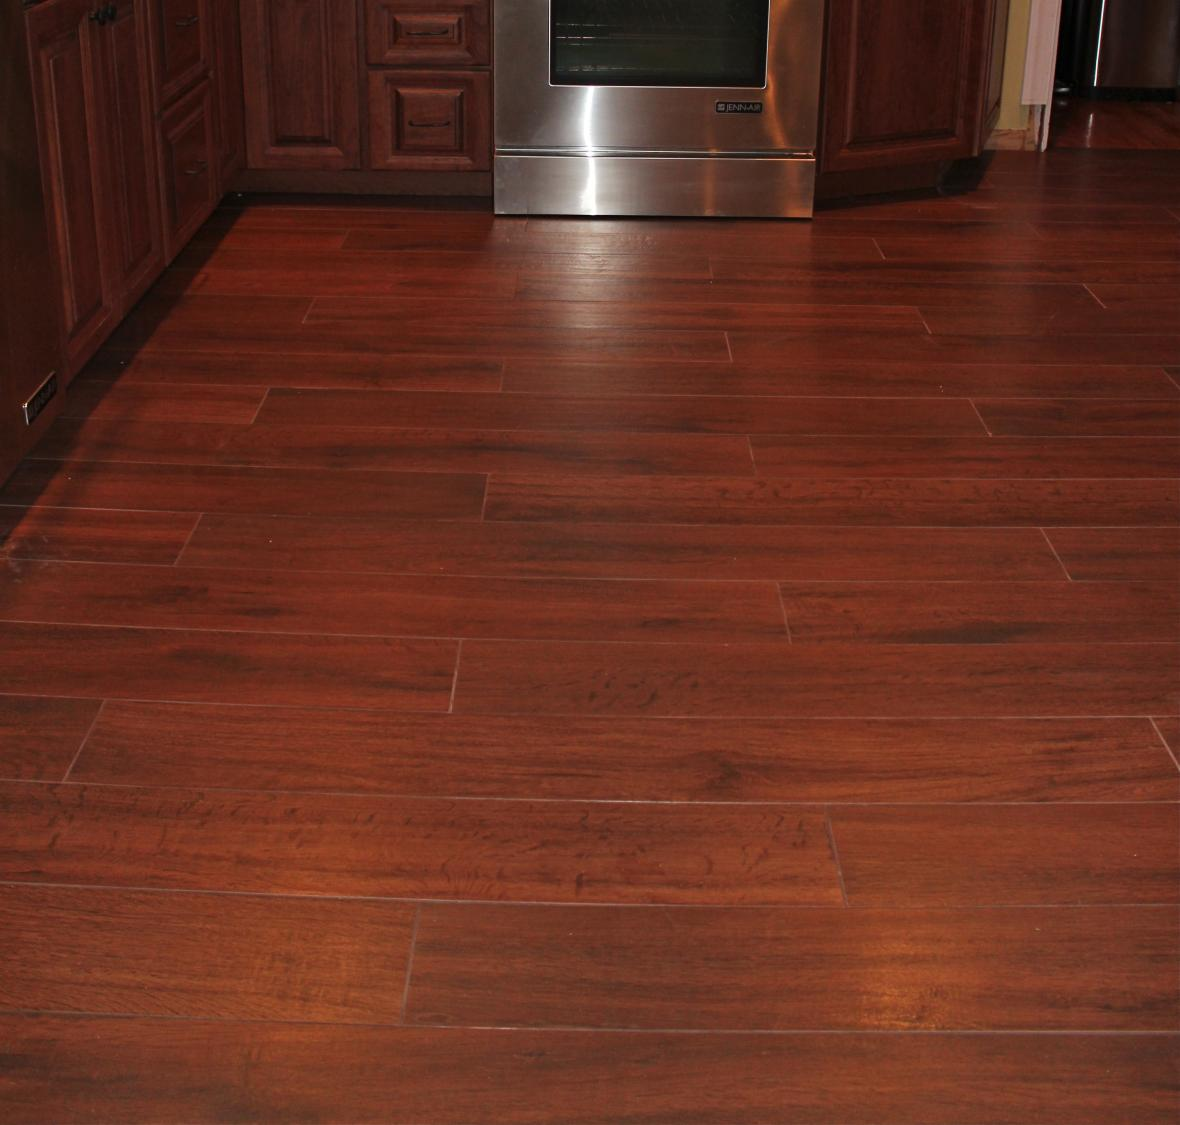 Porcelain wood plank tile floor new jersey custom tile Wood porcelain tile planks